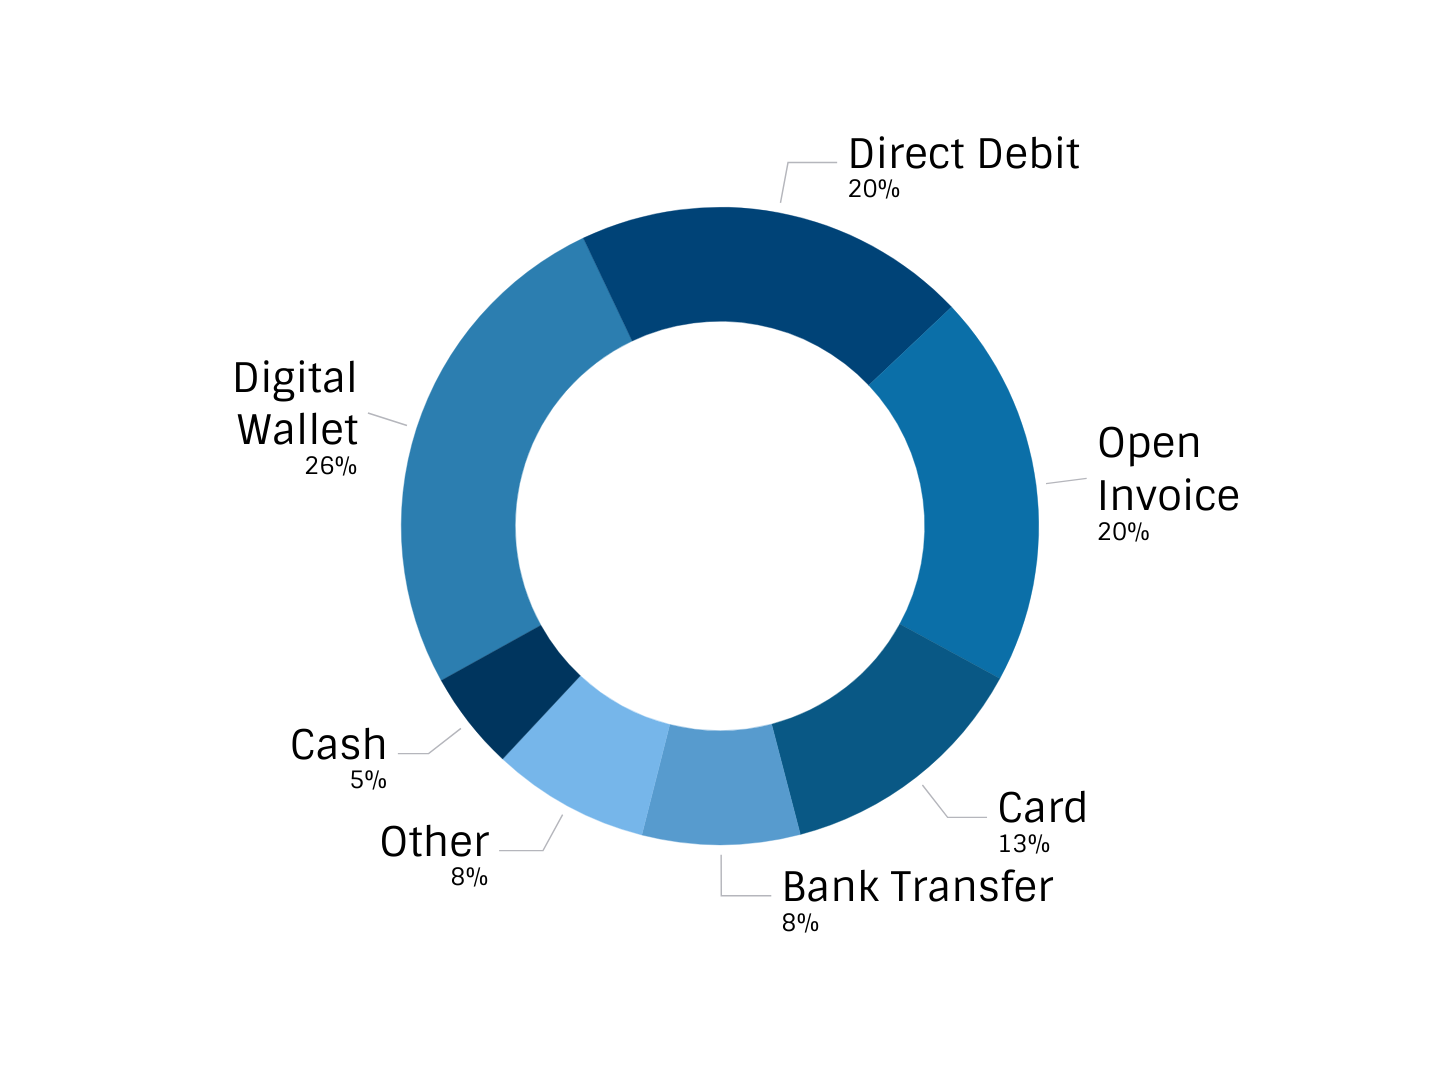 A pie chart showing the top payment methods split by value.